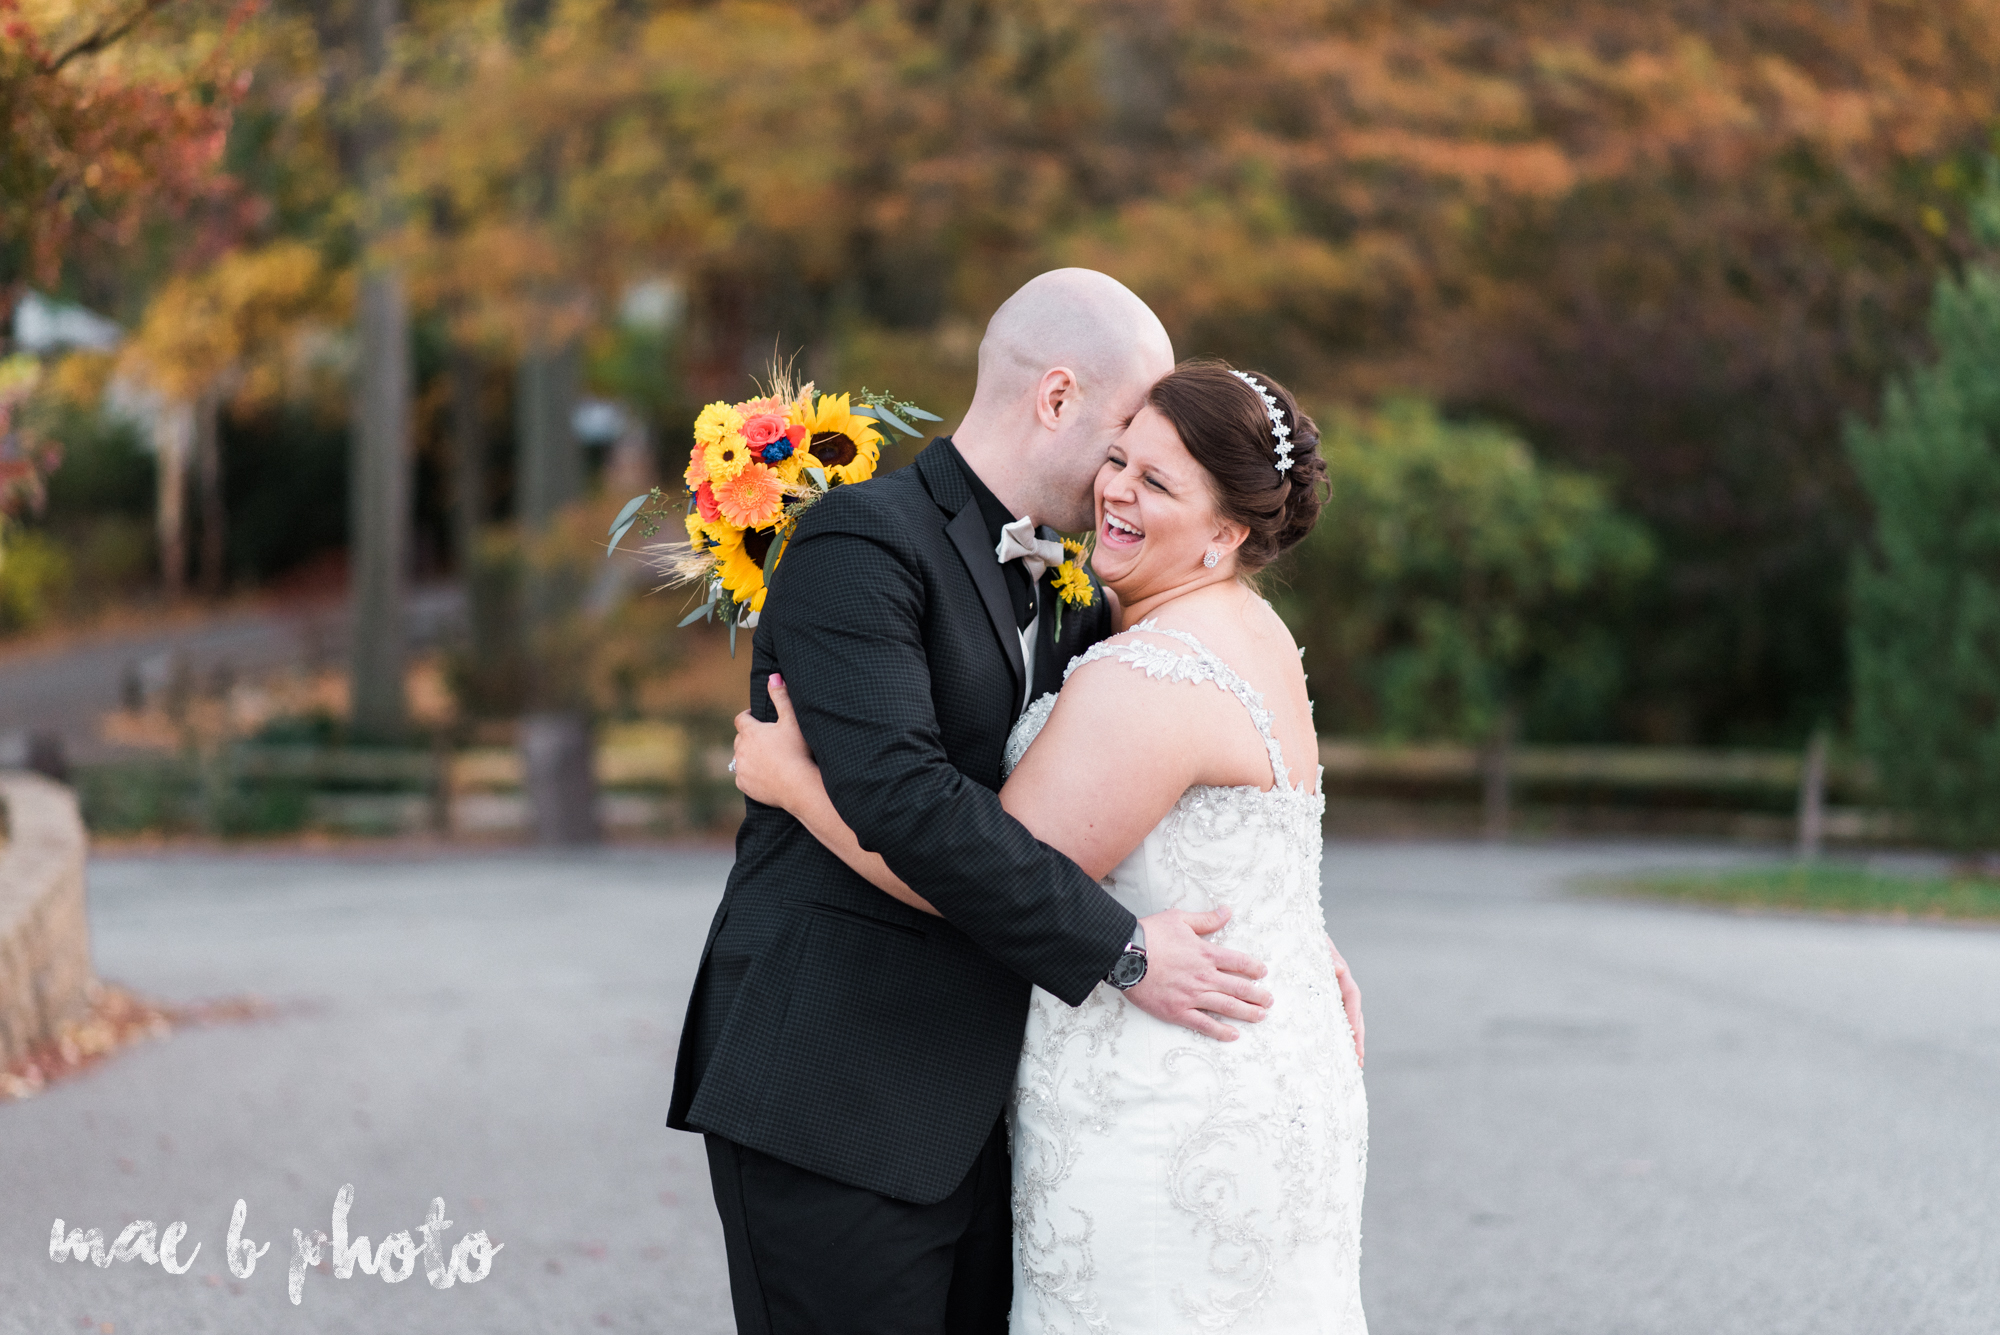 kaylynn & matt's fall zoo wedding at the cleveland metroparks zoo in cleveland ohio photographed by mae b photo-30.jpg